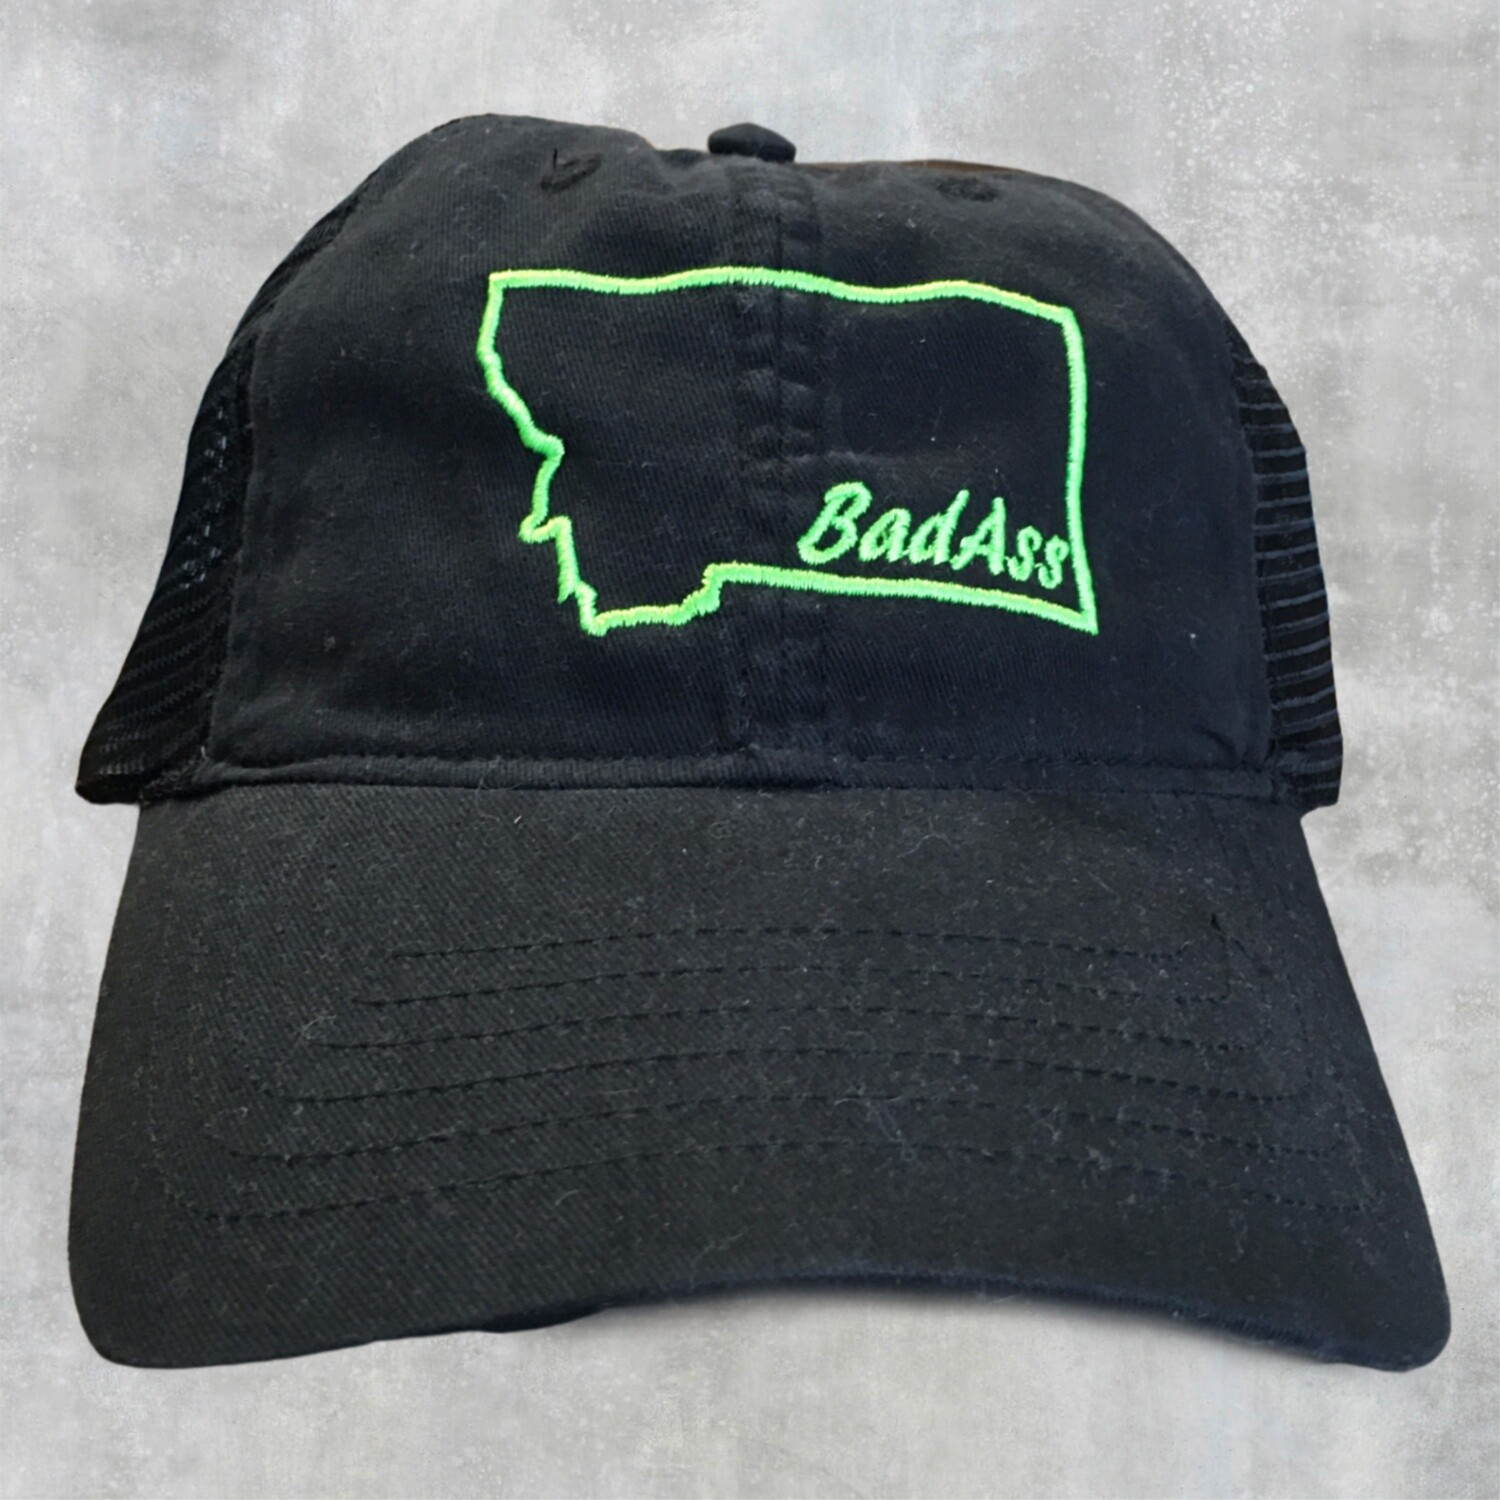 BadAss Black w/ Lime Green Embroidery